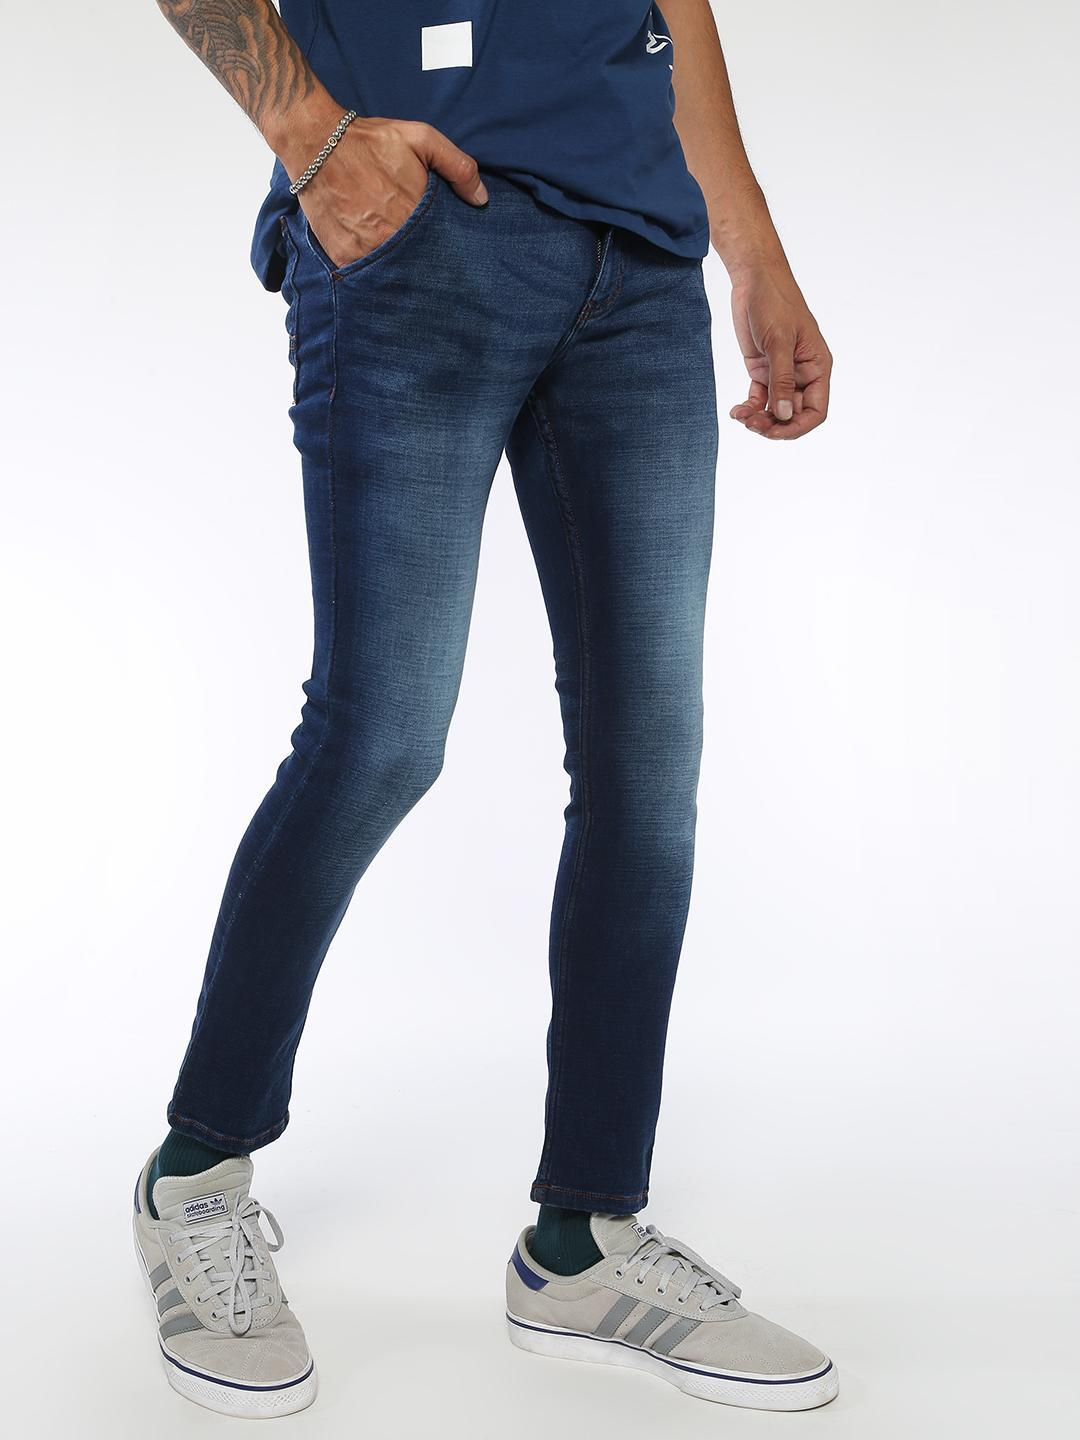 Sheltr Blue Men's Skinny Fit Jeans 1